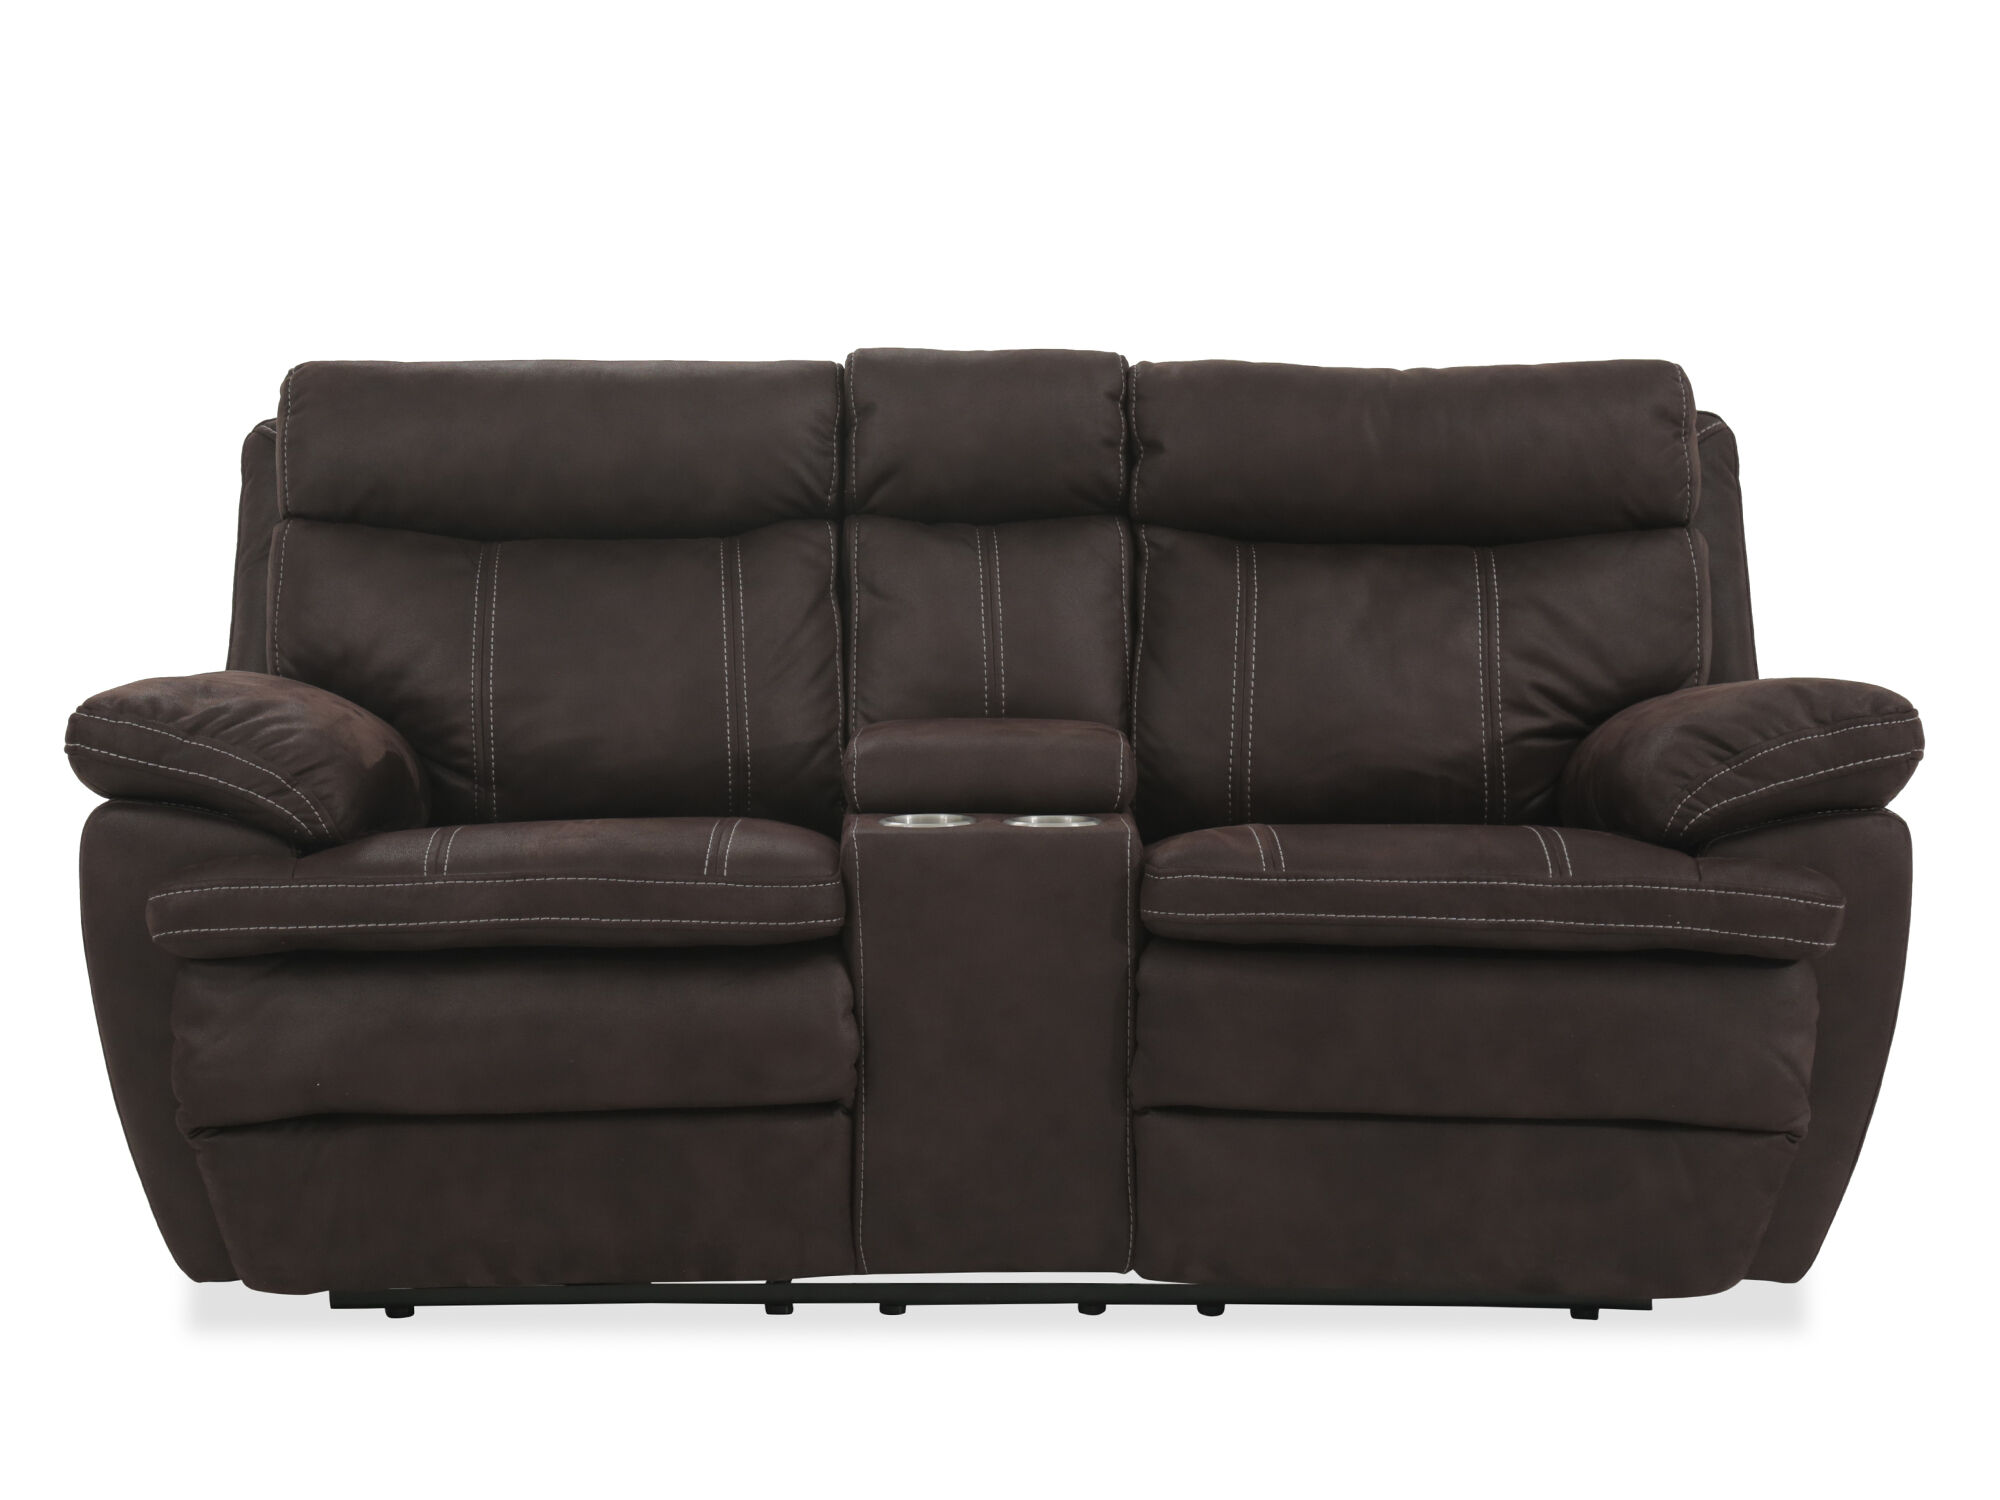 dark brown microfiber sofa sleeper sectional queen power reclining 77 quot loveseat with console in